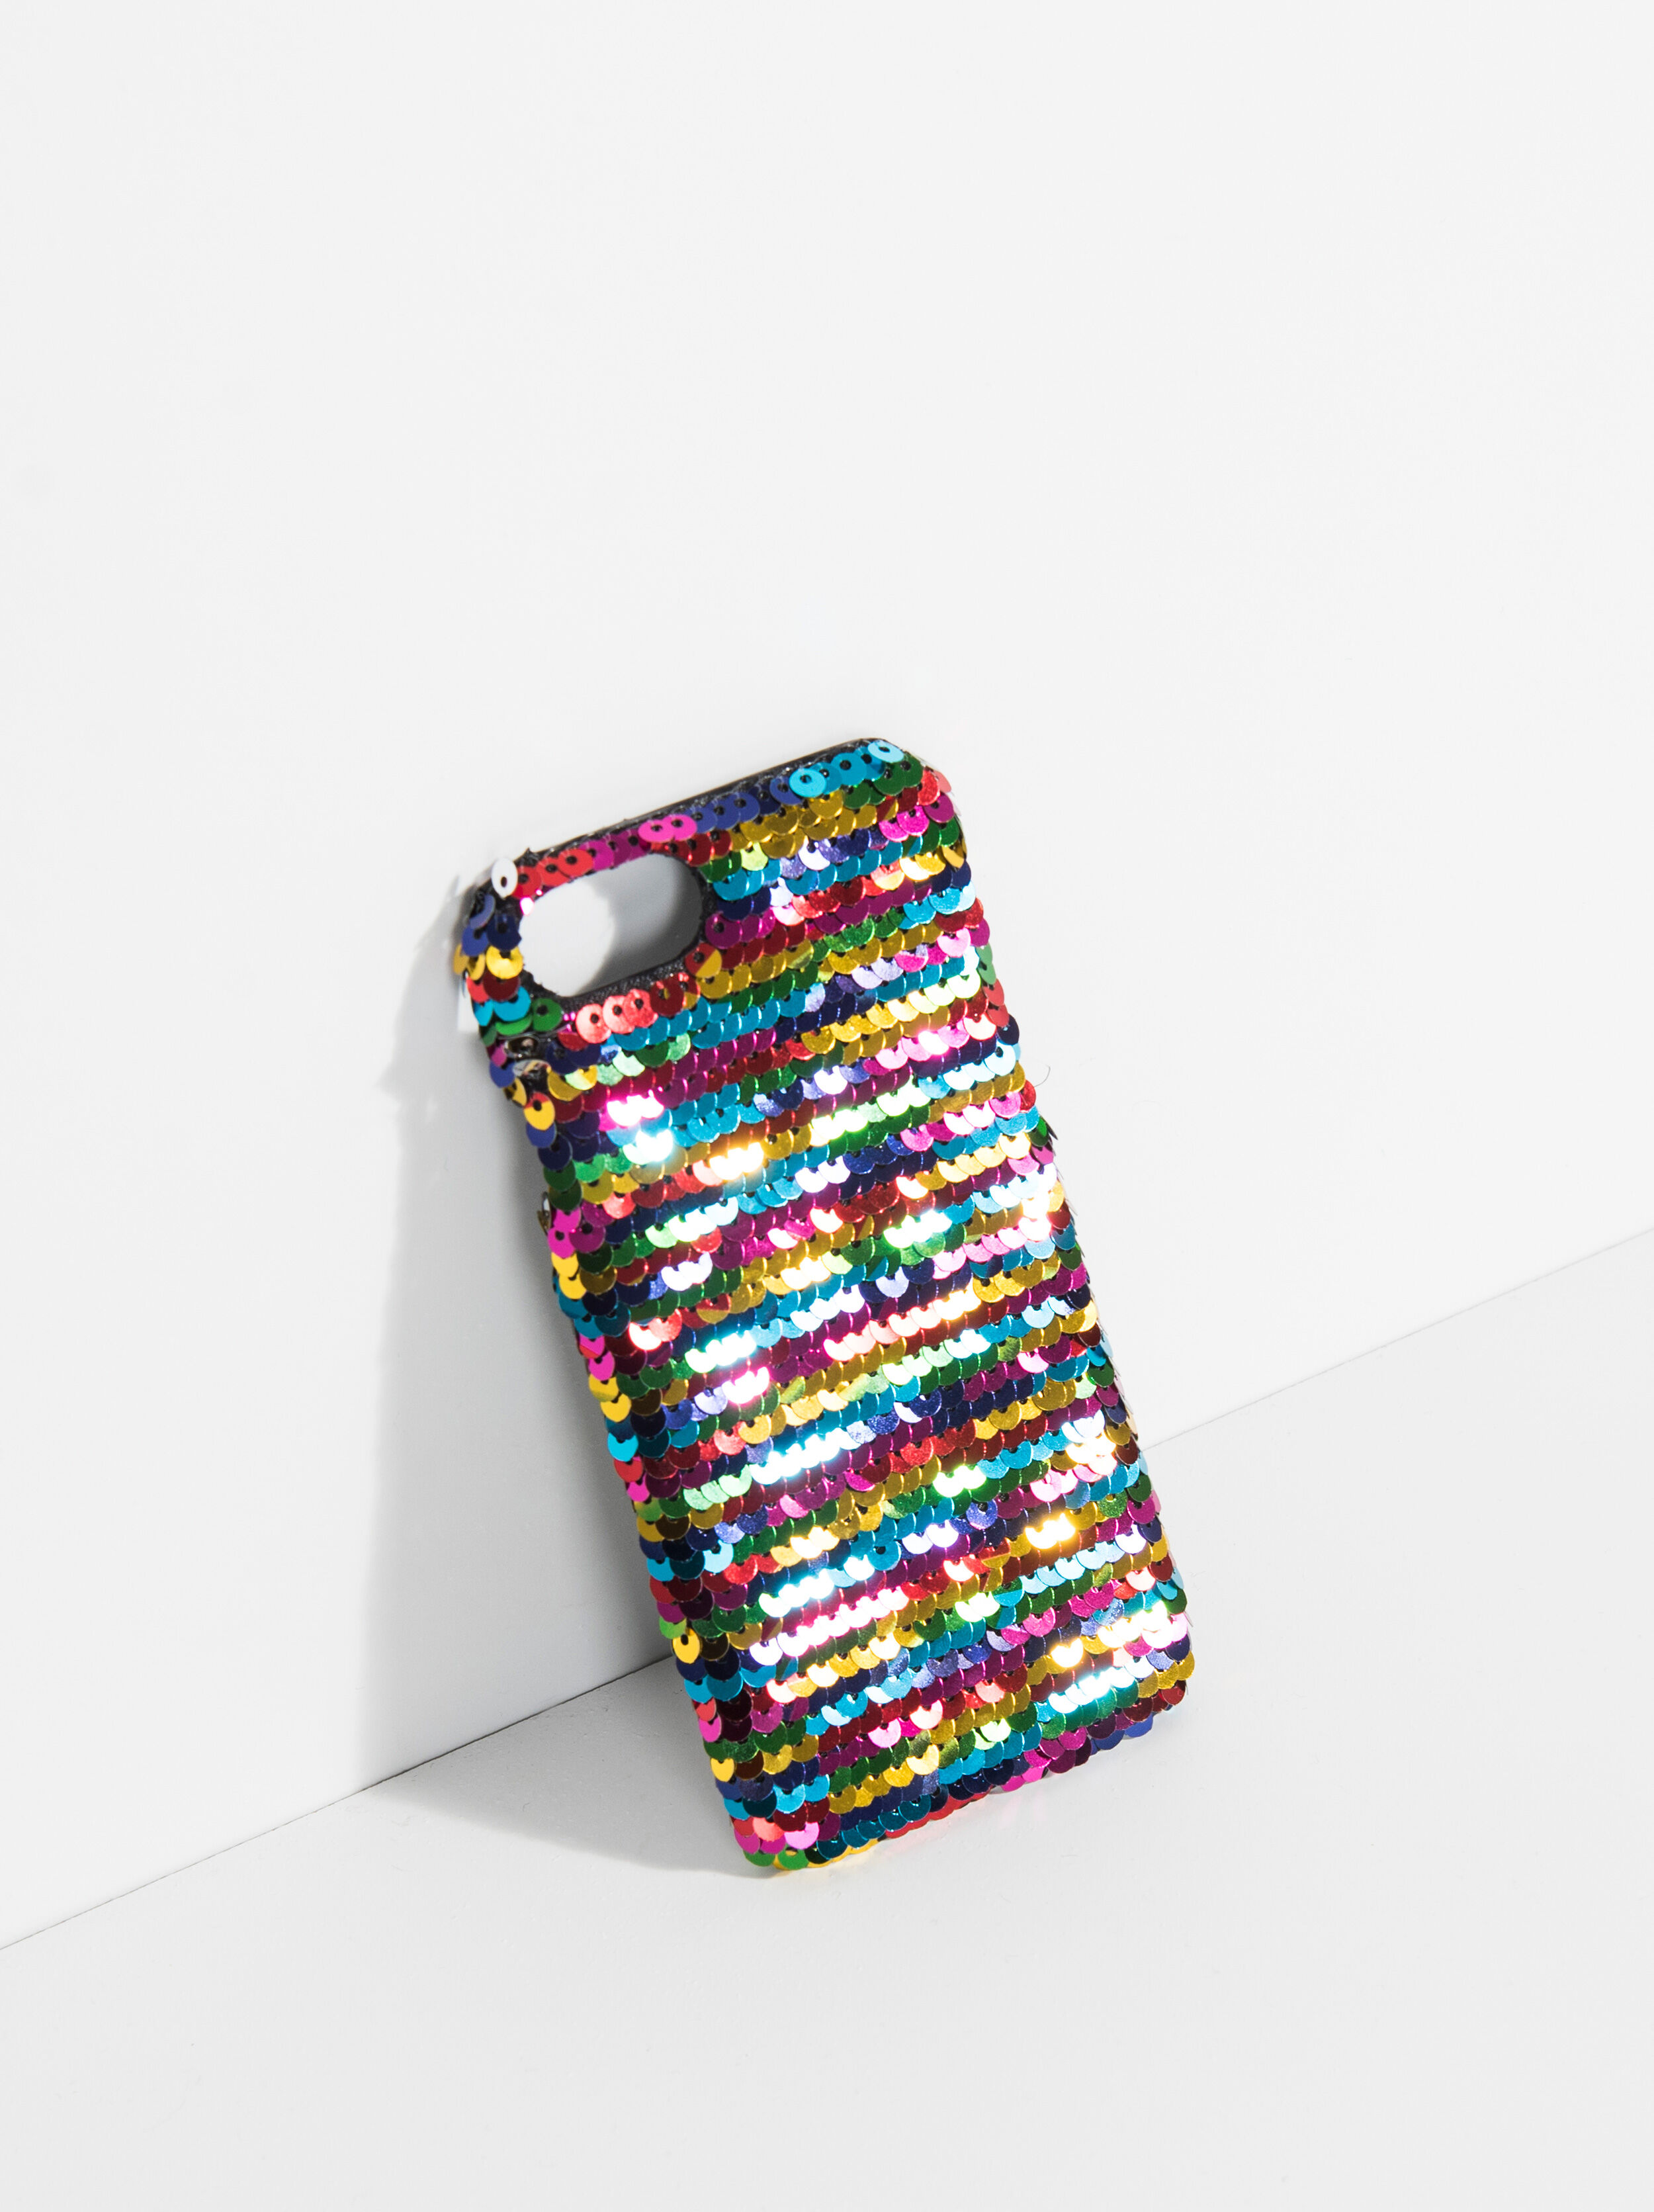 Funda Protectora Iphone 6/6s/7, Multicor, Hi Res ...